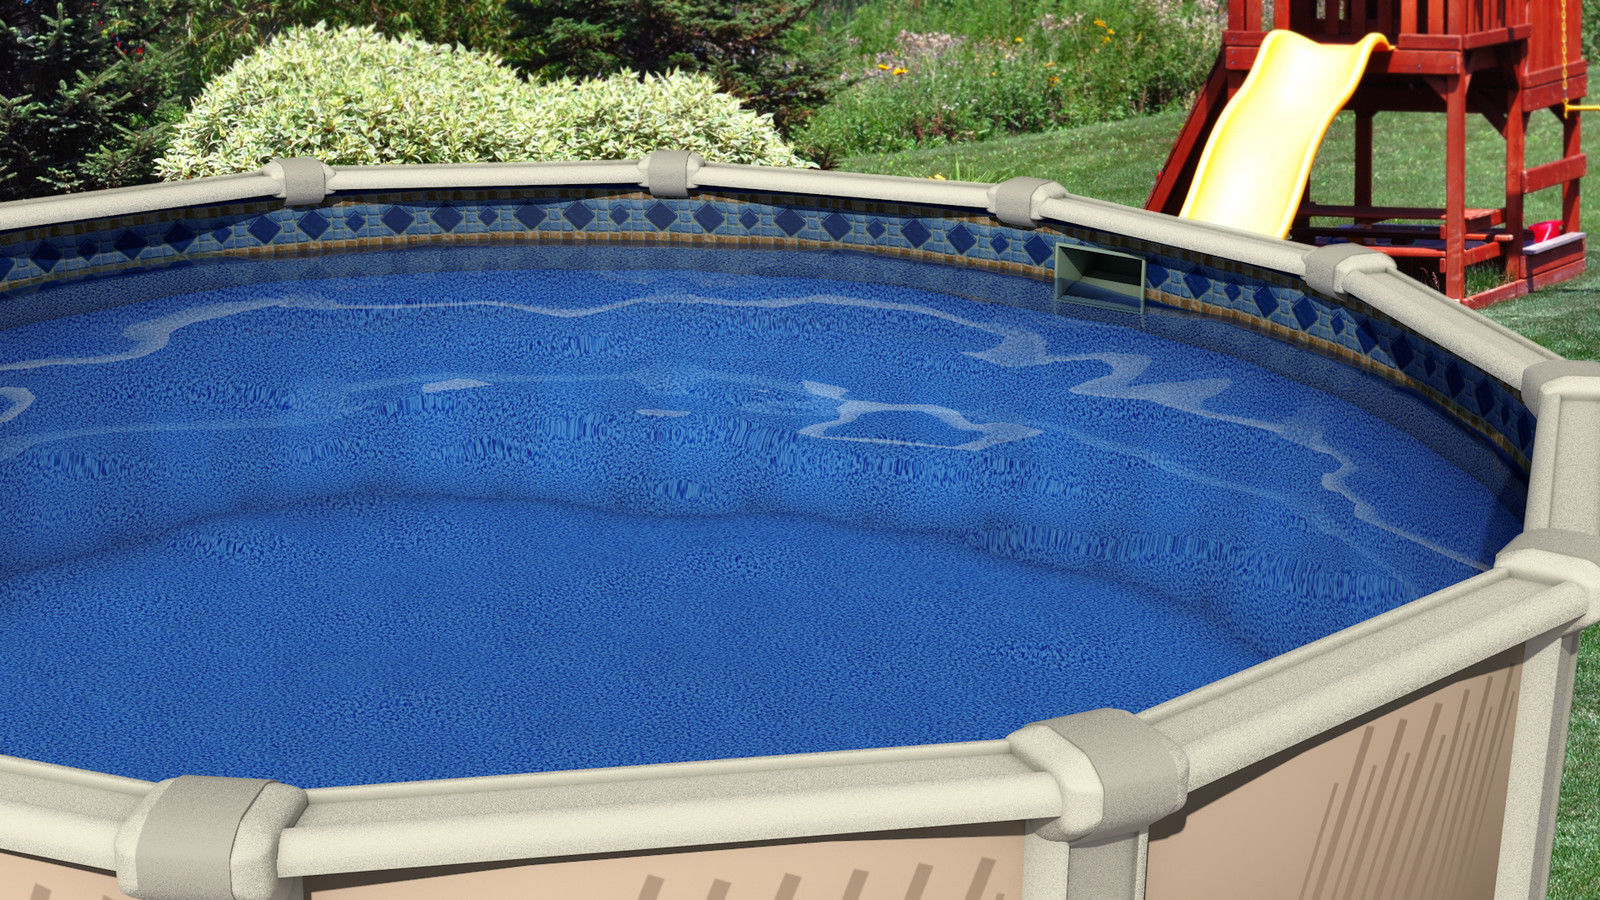 15 ft round unibead 52 inch swimming pool liner 25 gauge for Swimming pool liners